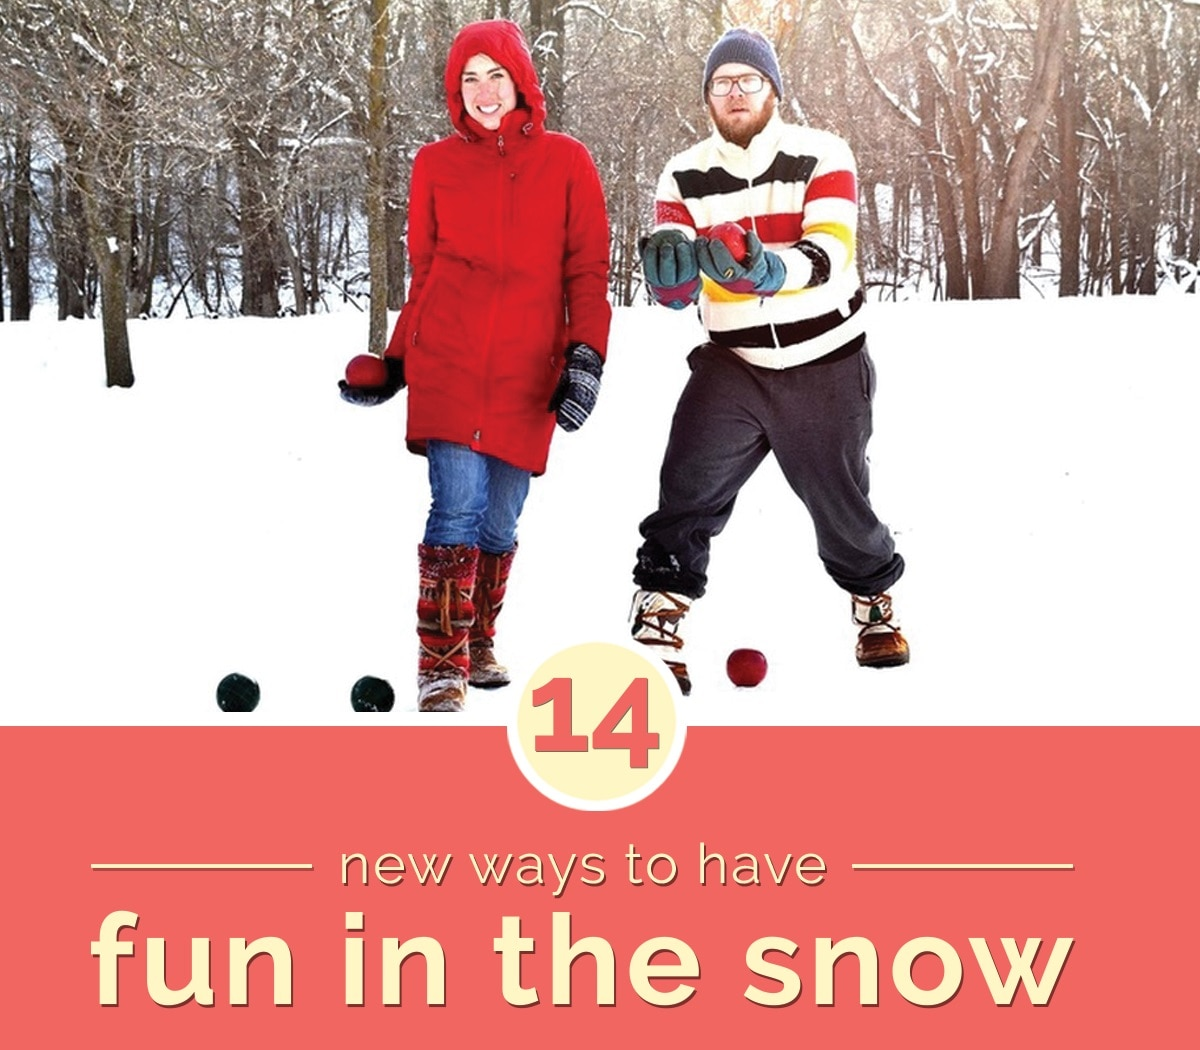 diy-fun-in-the-snow